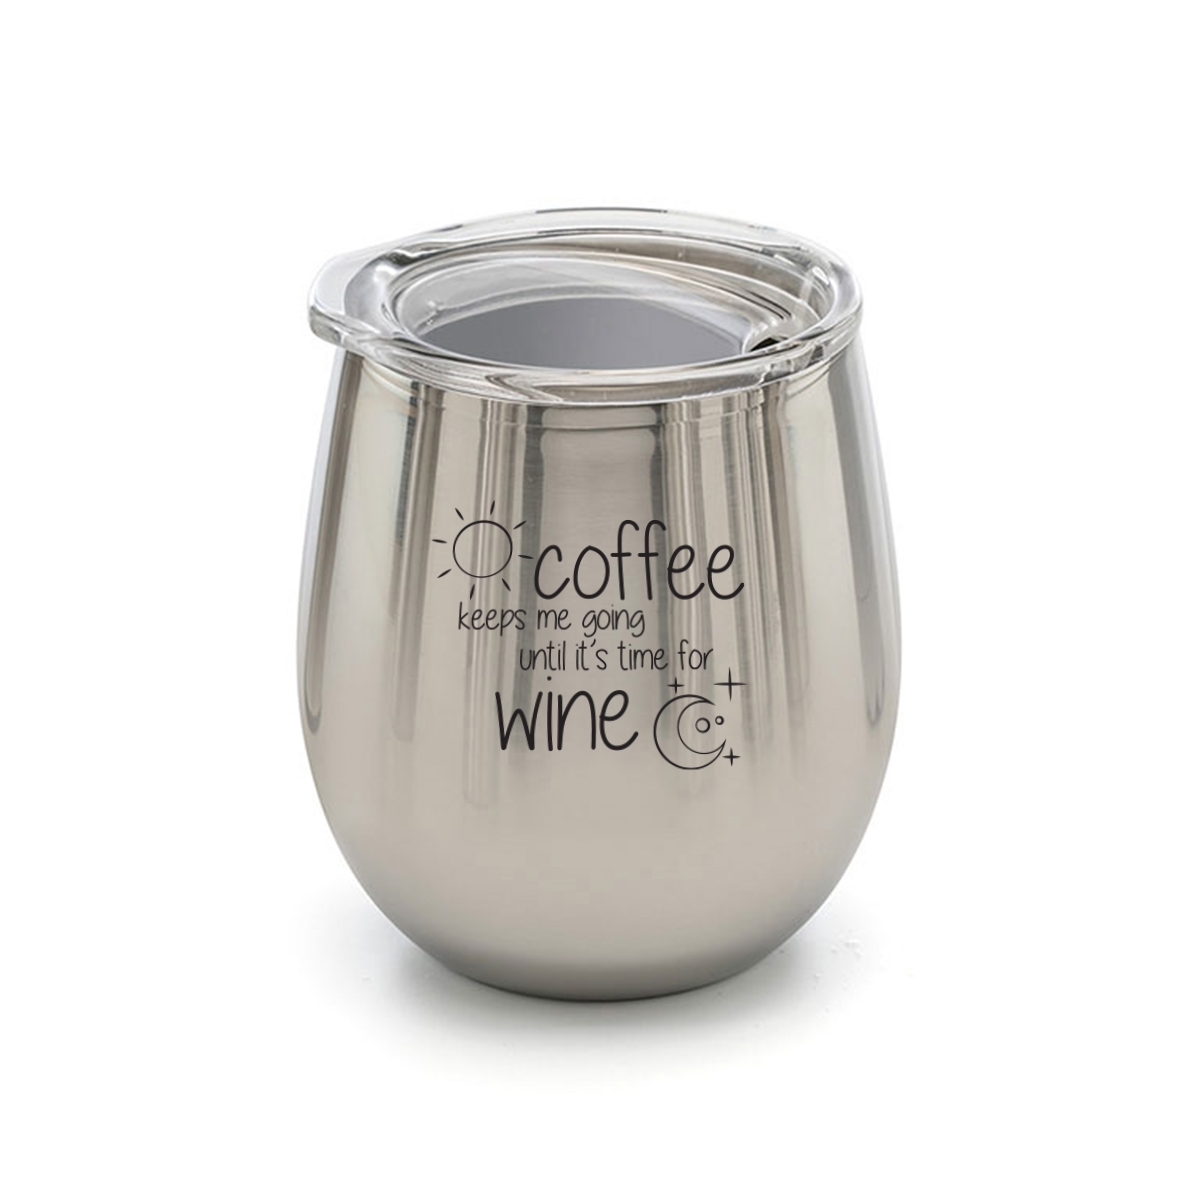 Stainless steel wine tumbler with quote